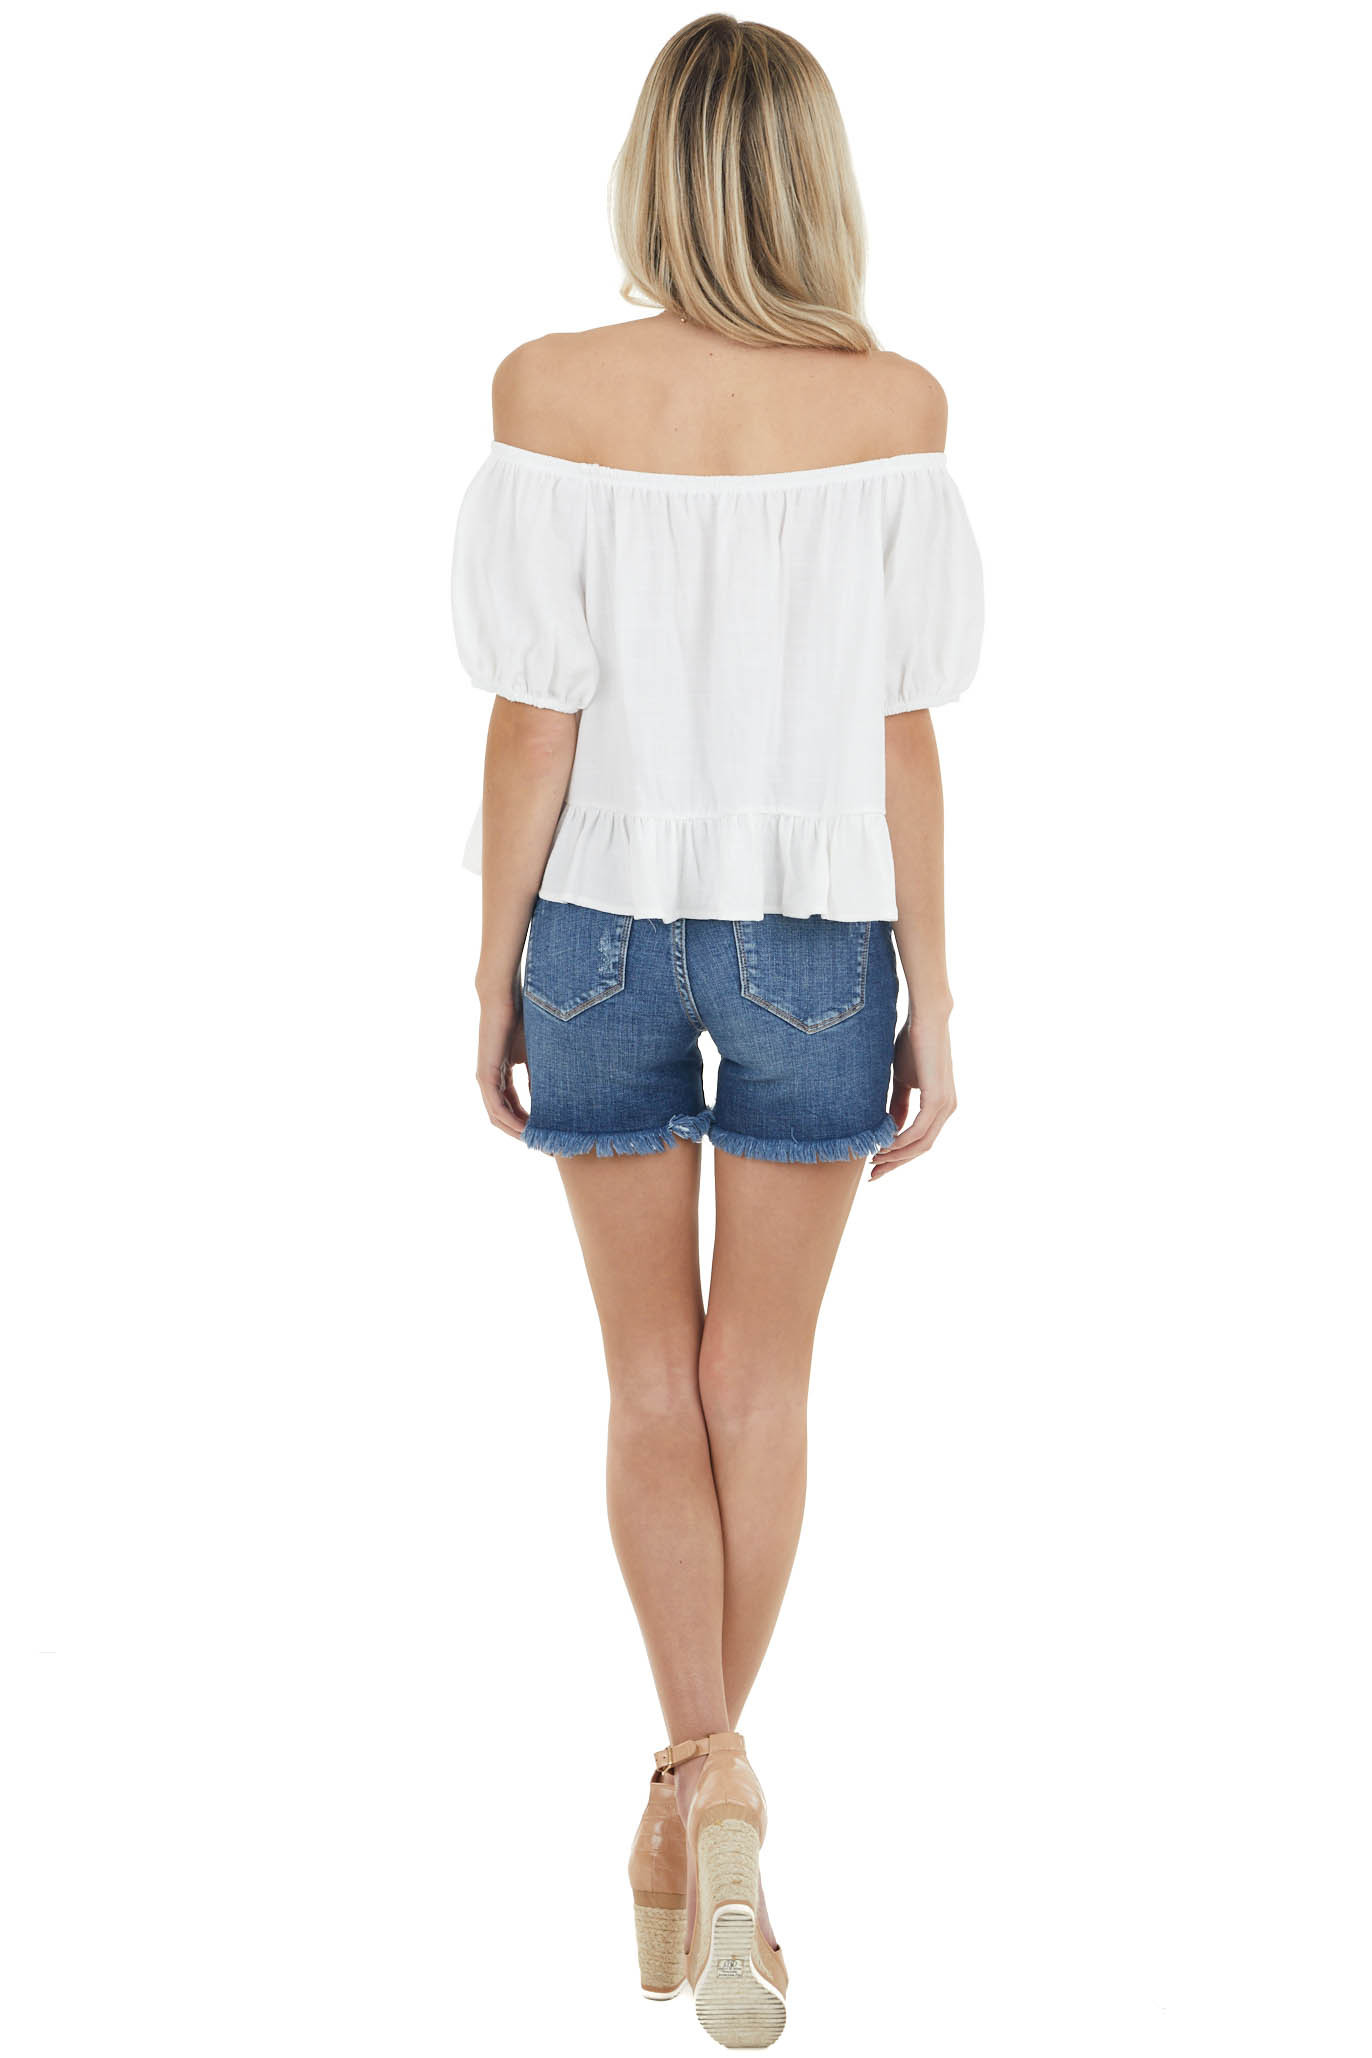 Ivory Short Puff Sleeves Woven Crop Top with Ruffle Detail